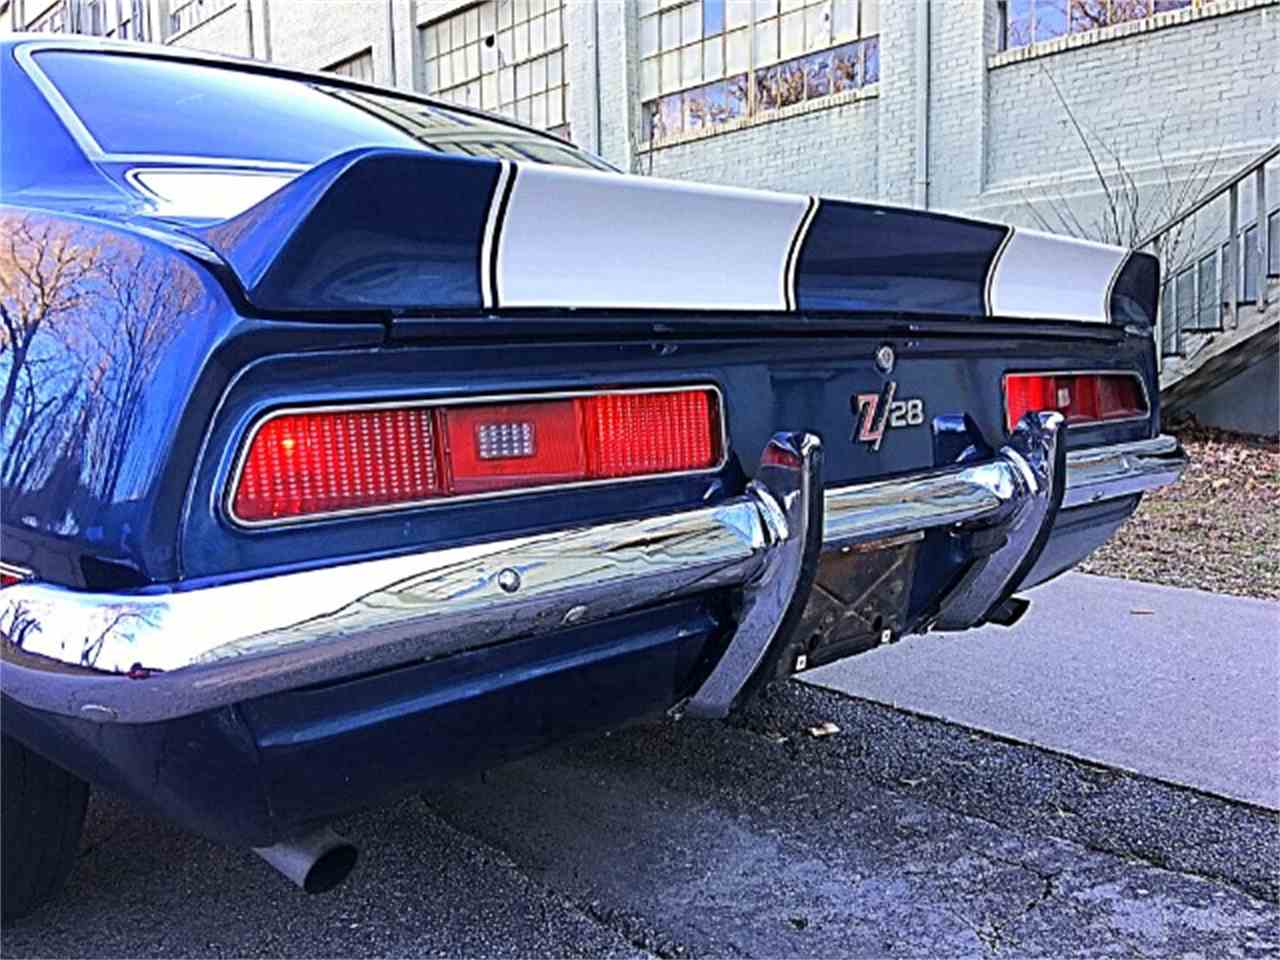 Large Picture of Classic '69 Camaro located in Dickson Tennessee - $59,990.00 - JKLL